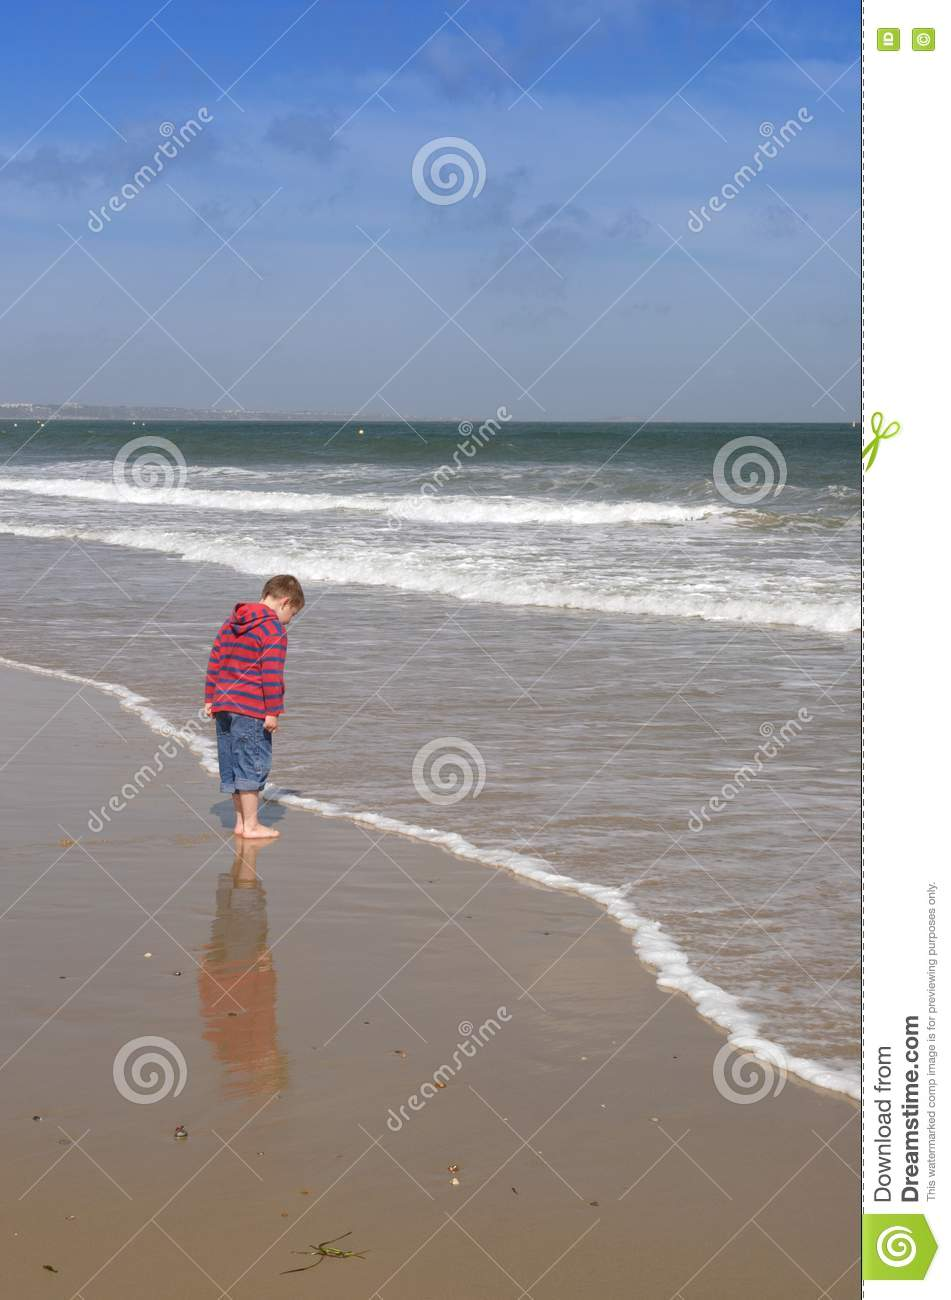 Boy Floating over Water Near Boy Standing on Side · Free